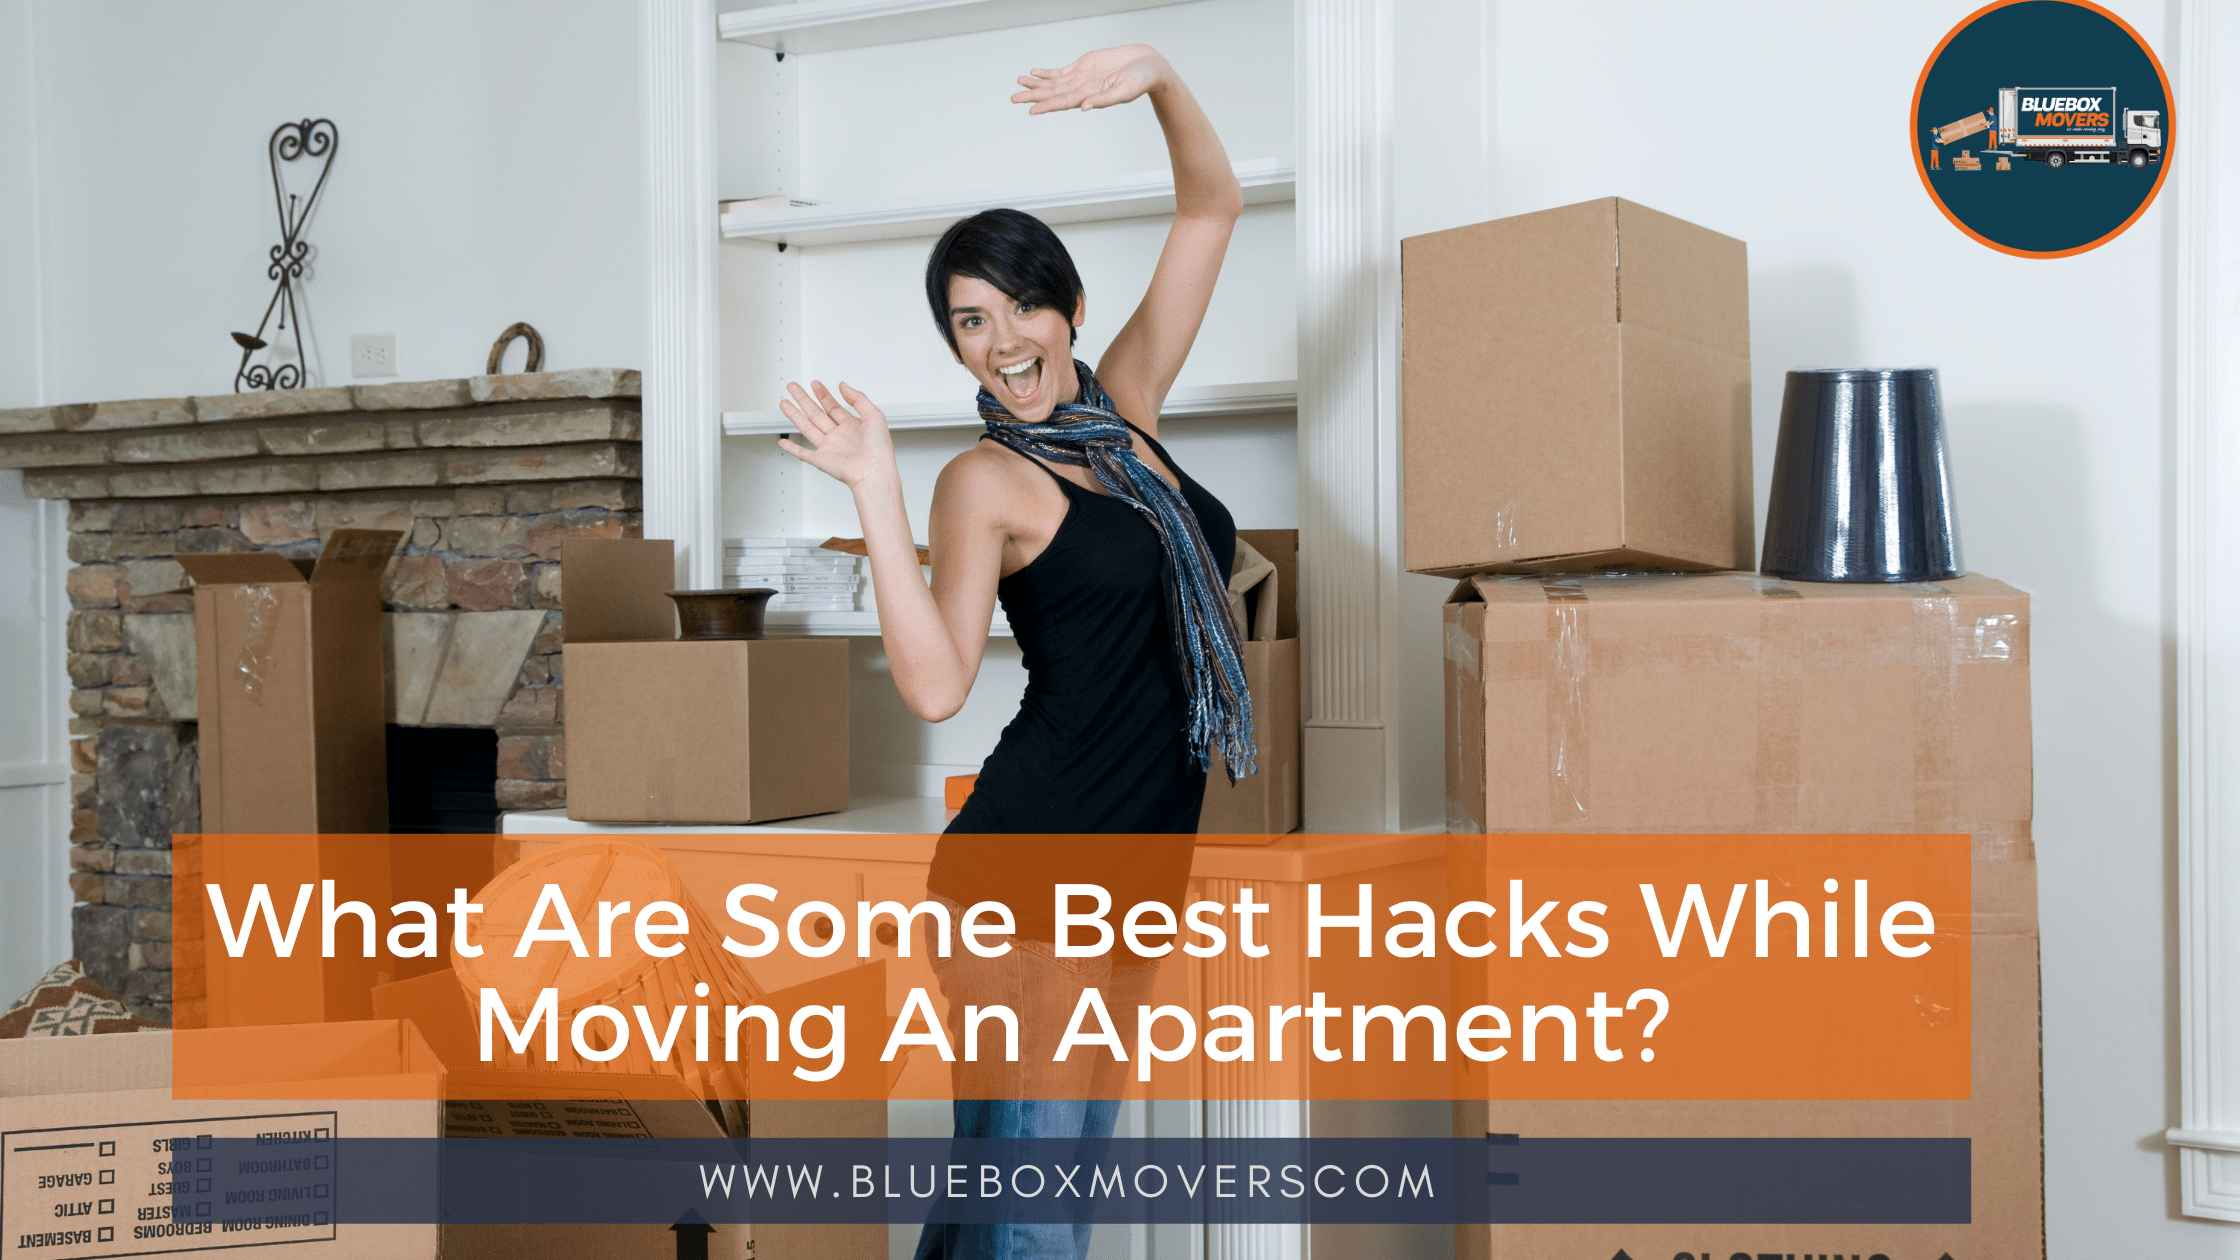 Hacks for Apartment moving